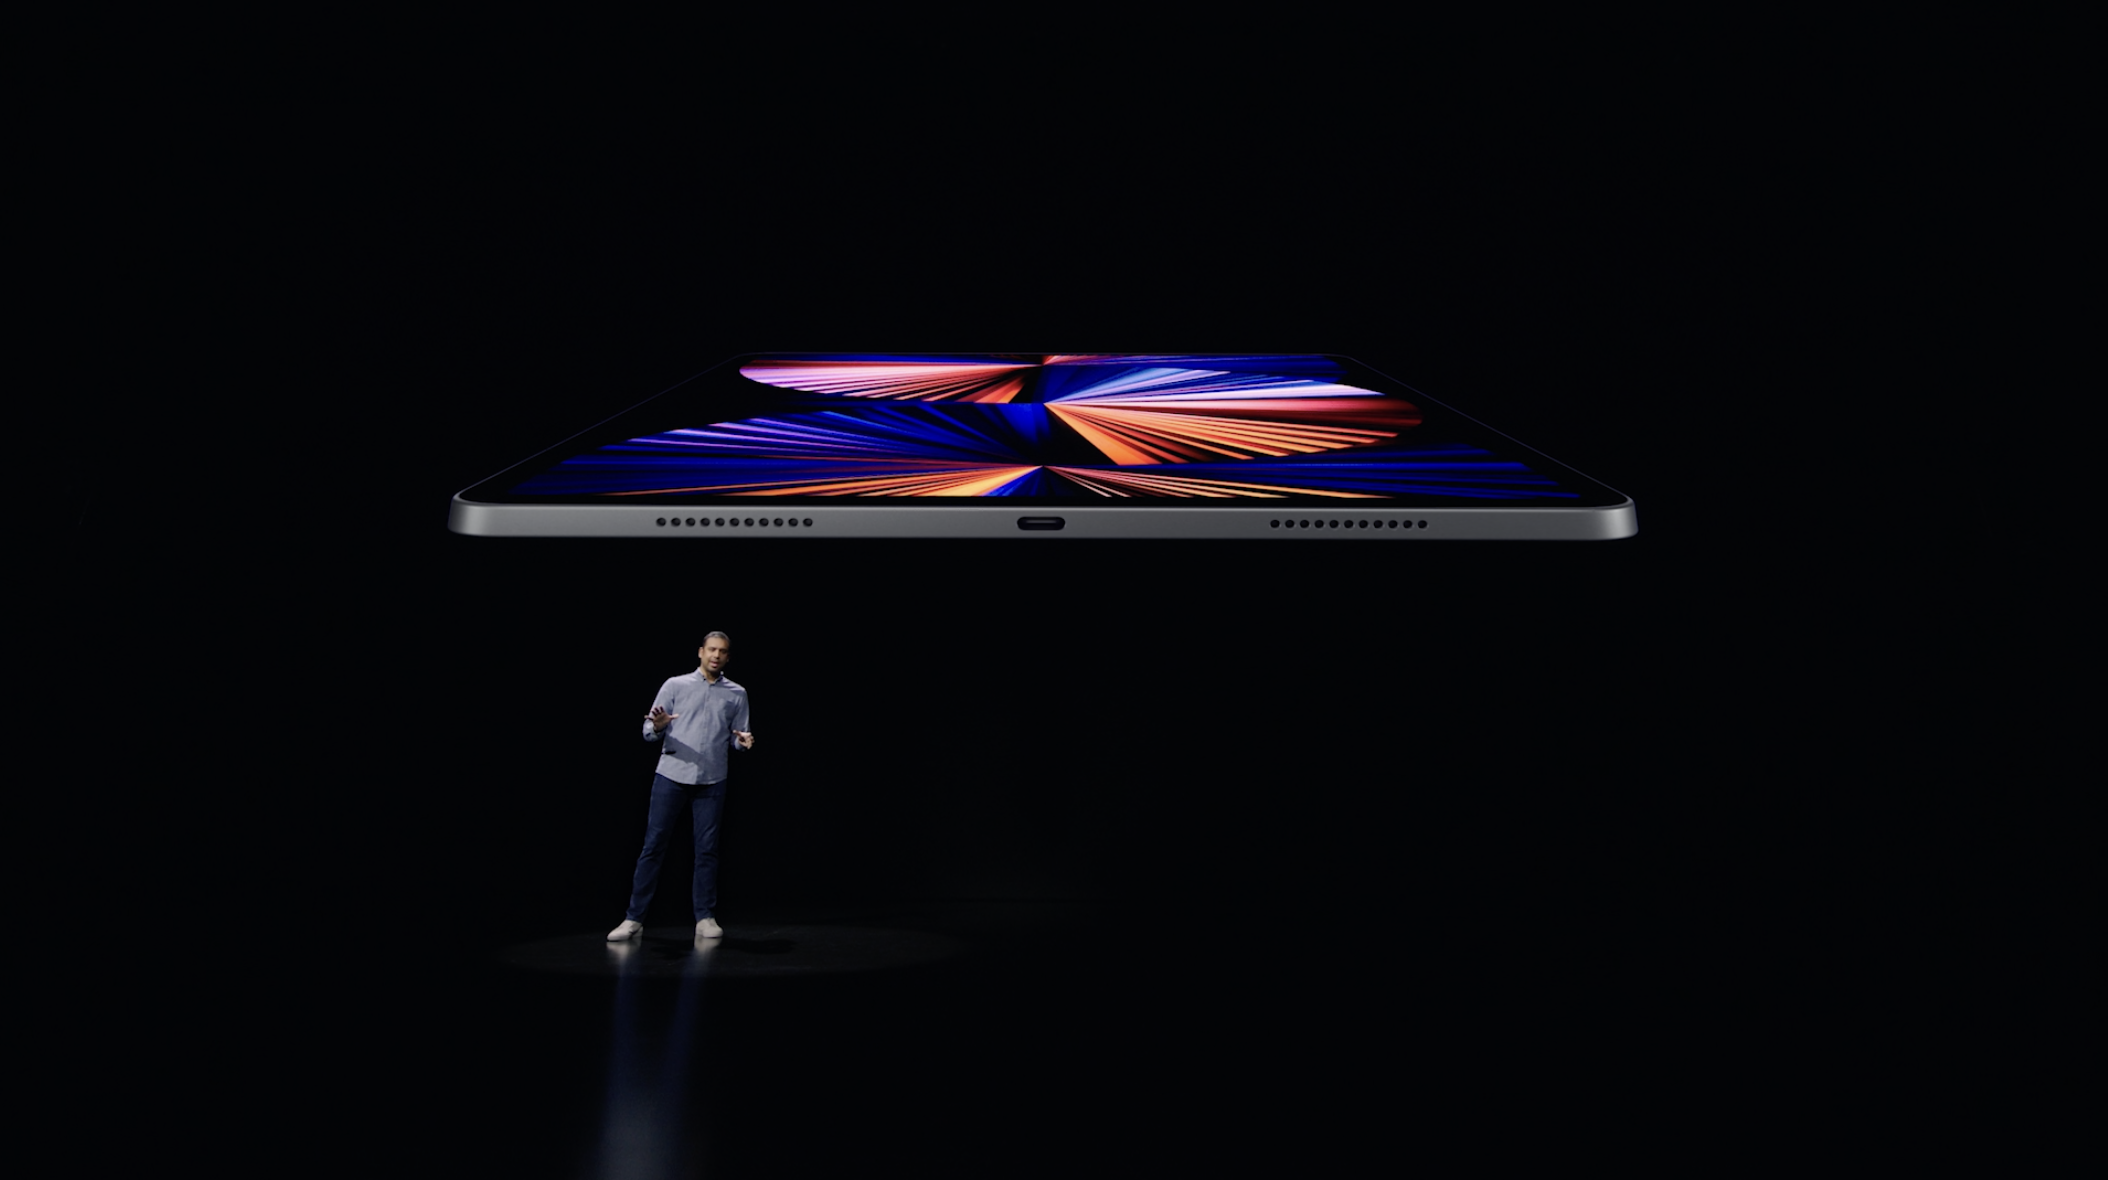 The new iPad Pro comes with Apple's M1 chip and a Thunderbolt port, among other improvements.